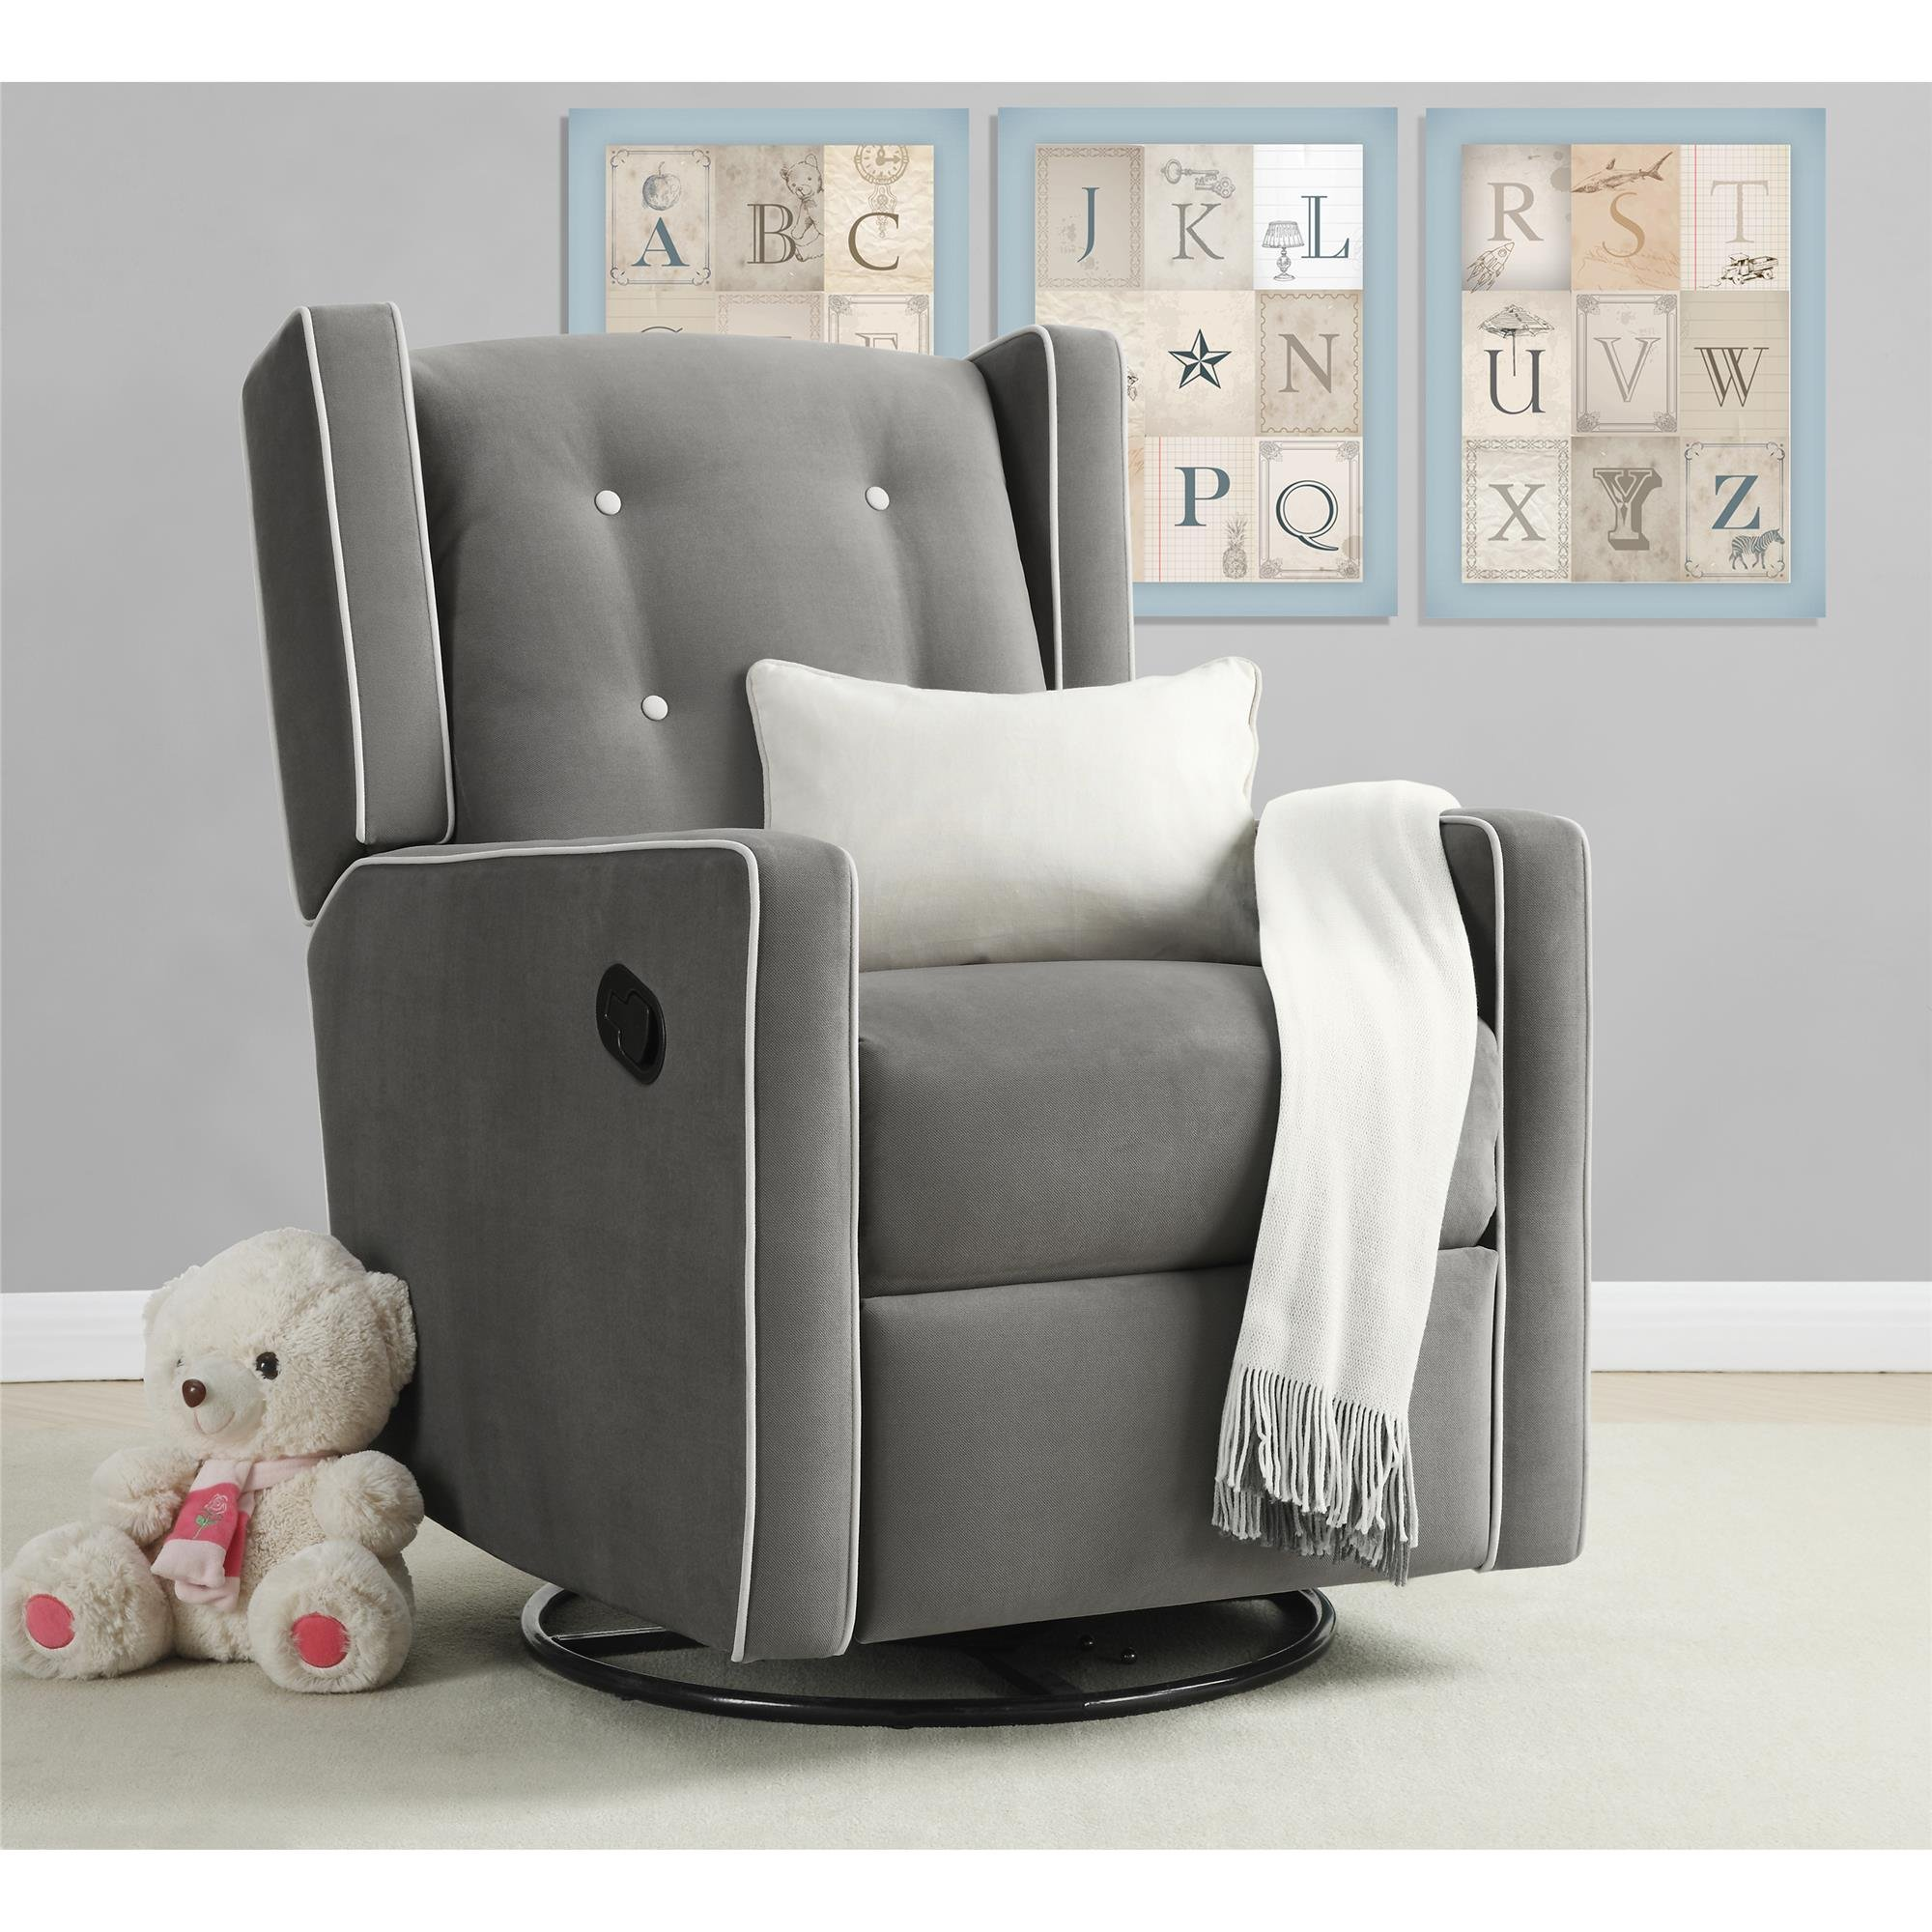 Baby Relax Mikayla Swivel Gliding Recliner, Gray Microfiber by Baby Relax (Image #2)